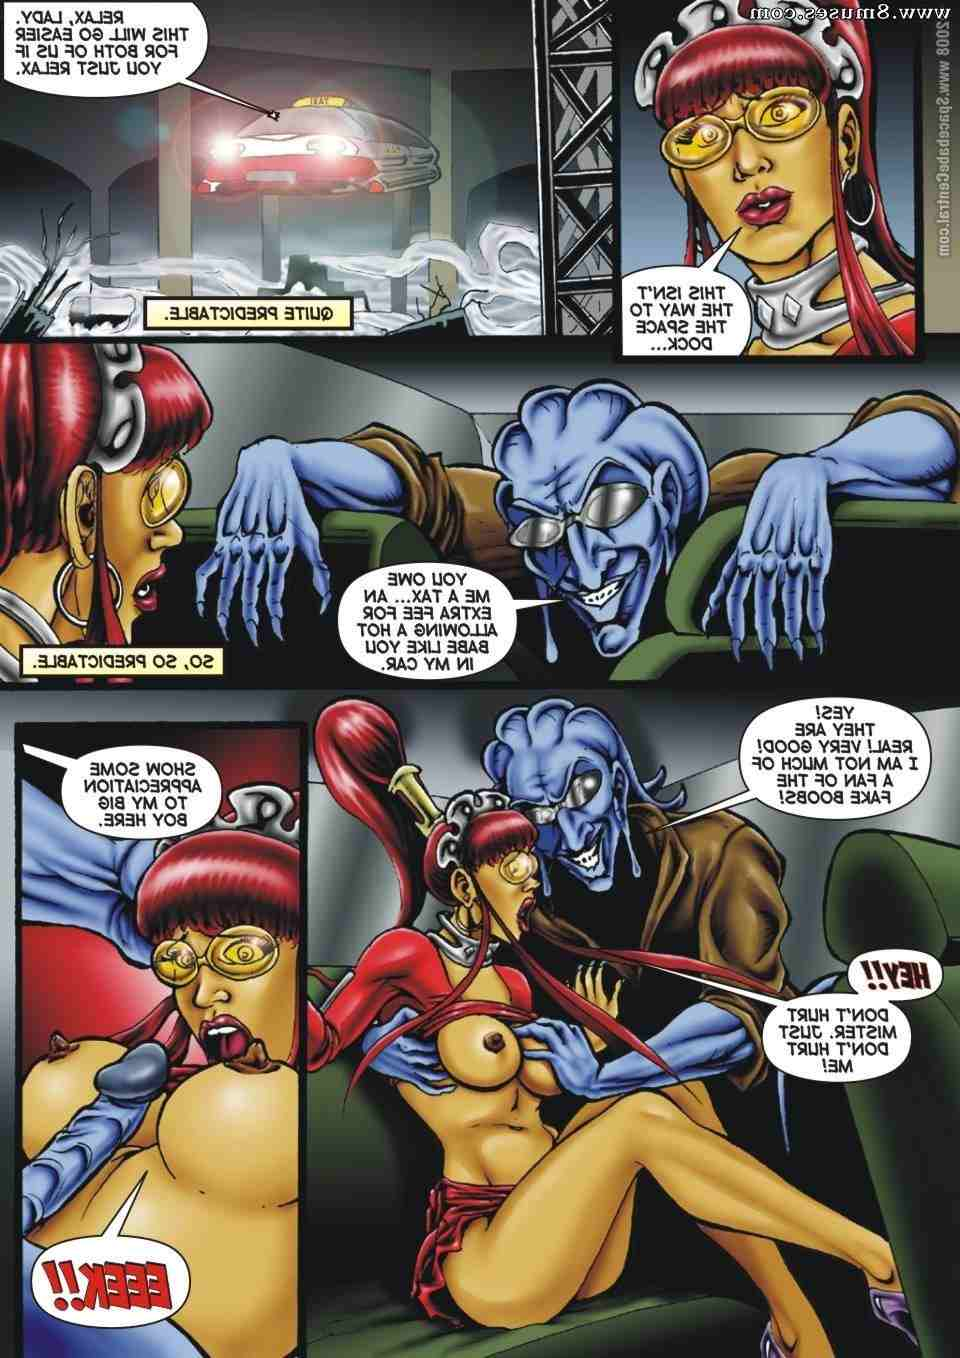 Central-Comics/Space-Babe-Central/Alien-Huntress Alien_Huntress__8muses_-_Sex_and_Porn_Comics_7.jpg